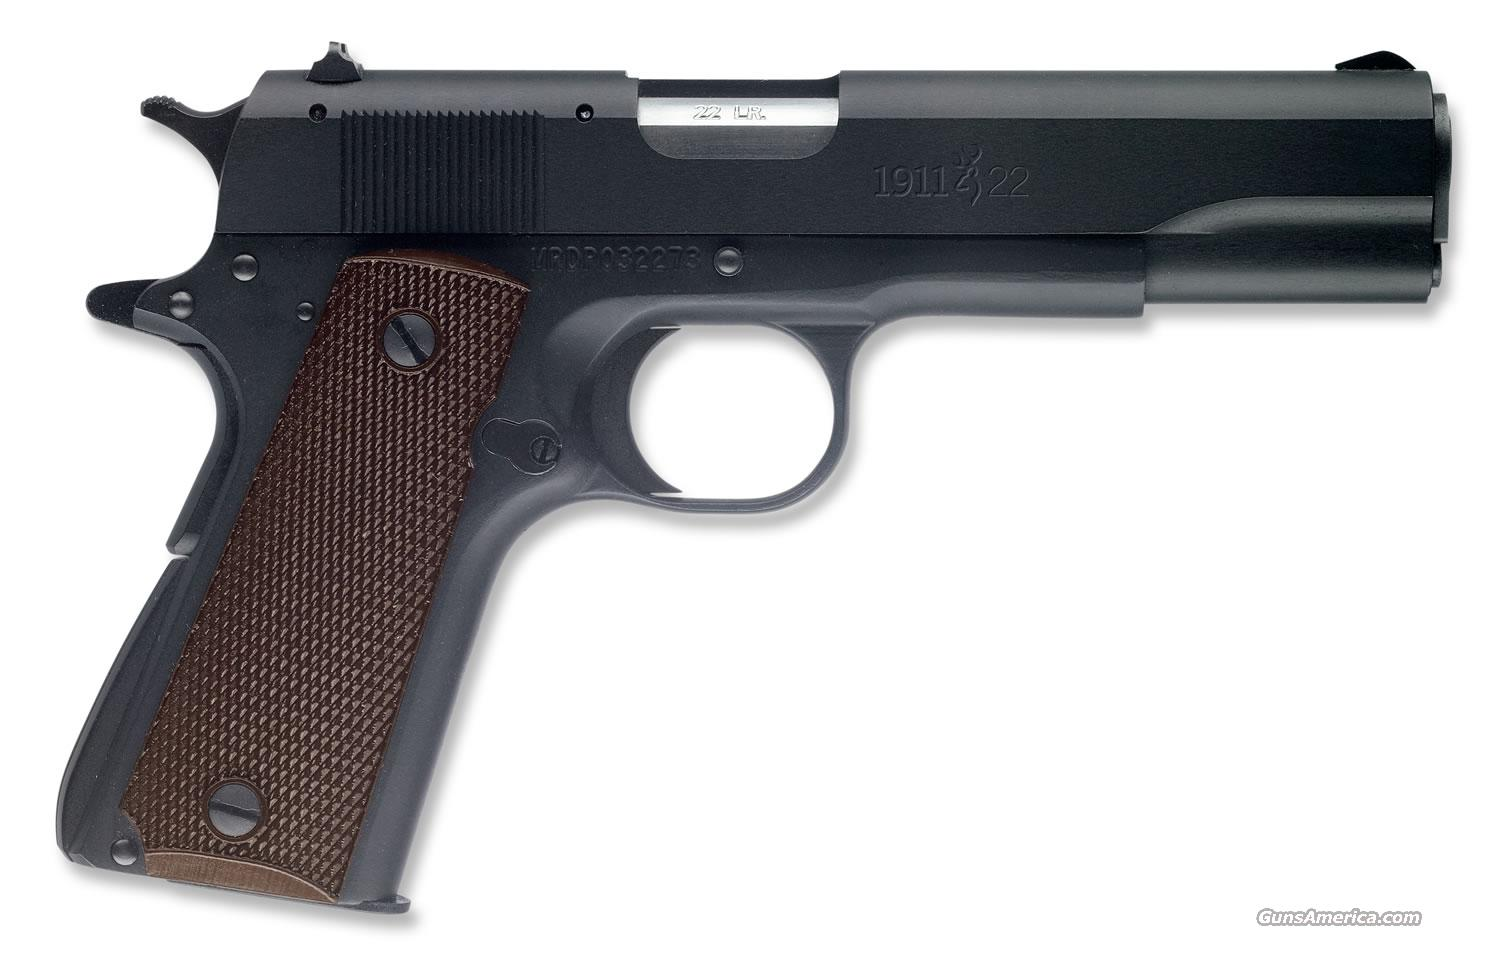 Browning 1911-22 A1 pistol 22 LR New!  Guns > Pistols > Browning Pistols > Other Autos